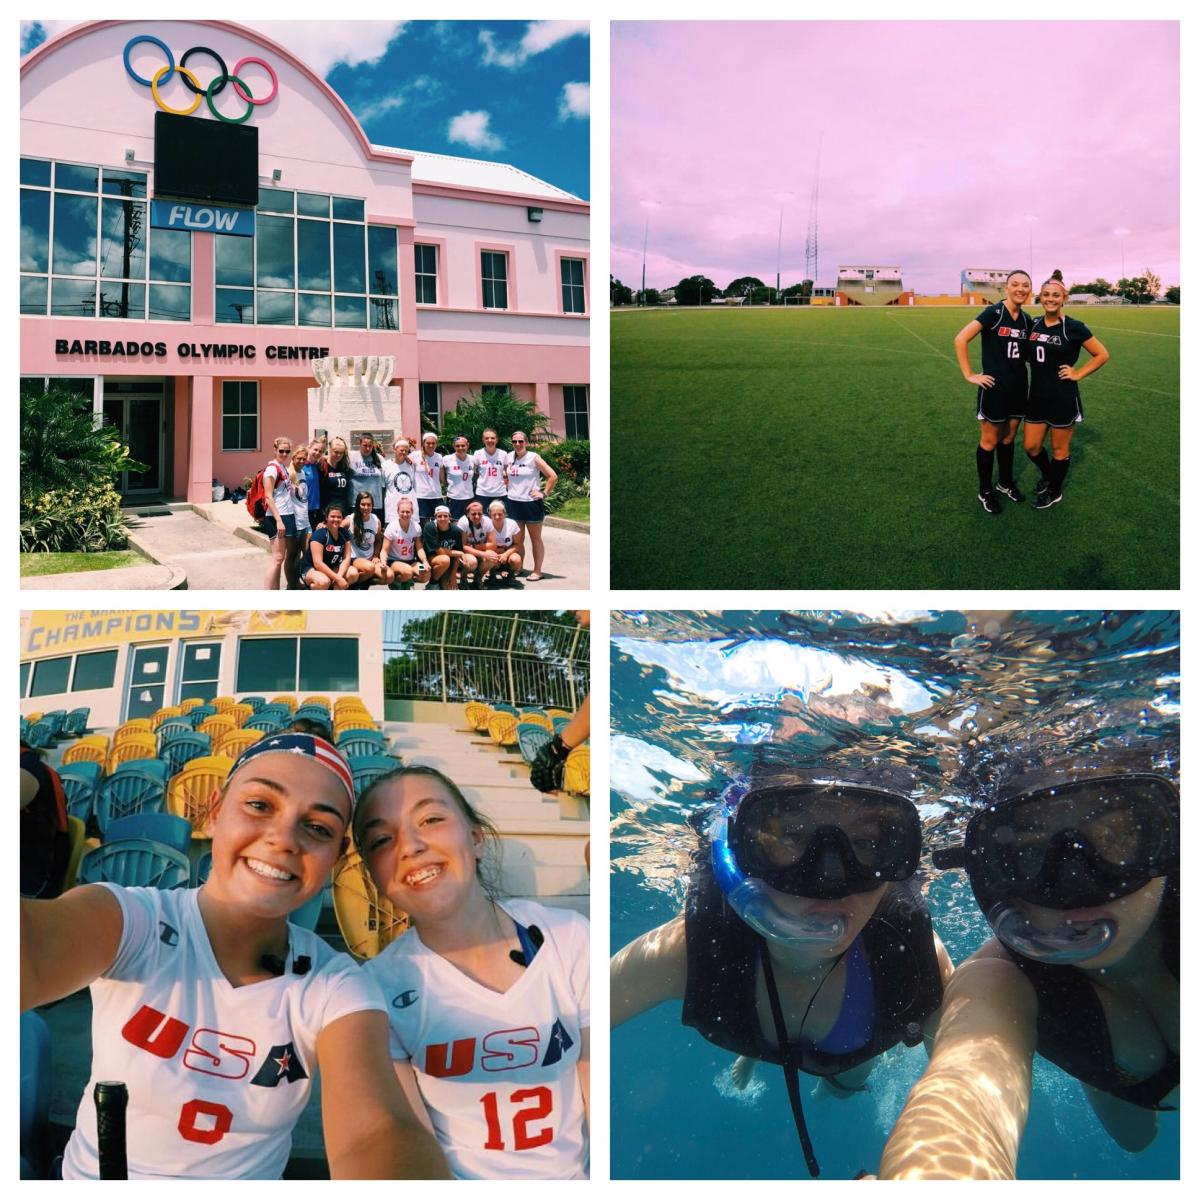 Grid of 4 instagram photos of NDMU students in Barbados